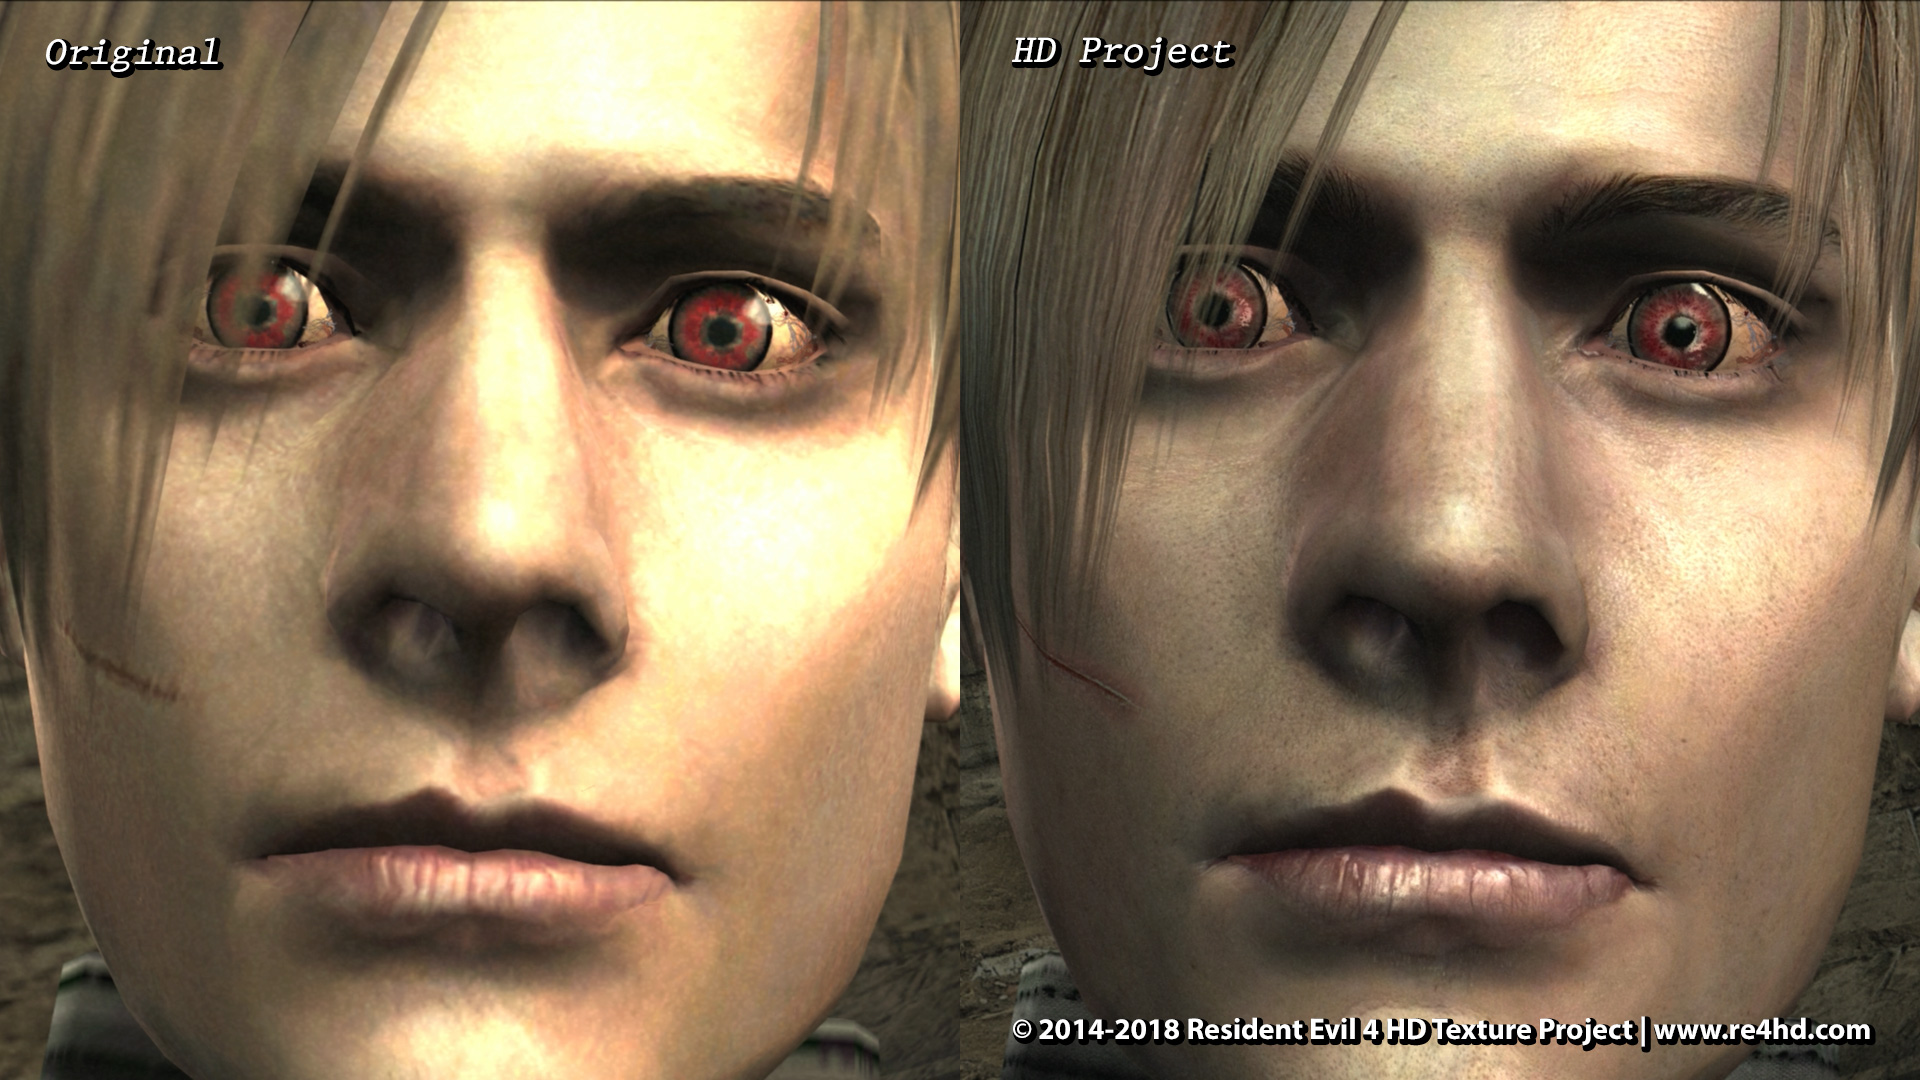 Resident Evil 4 Hd Project New Screenshots Showcase Character